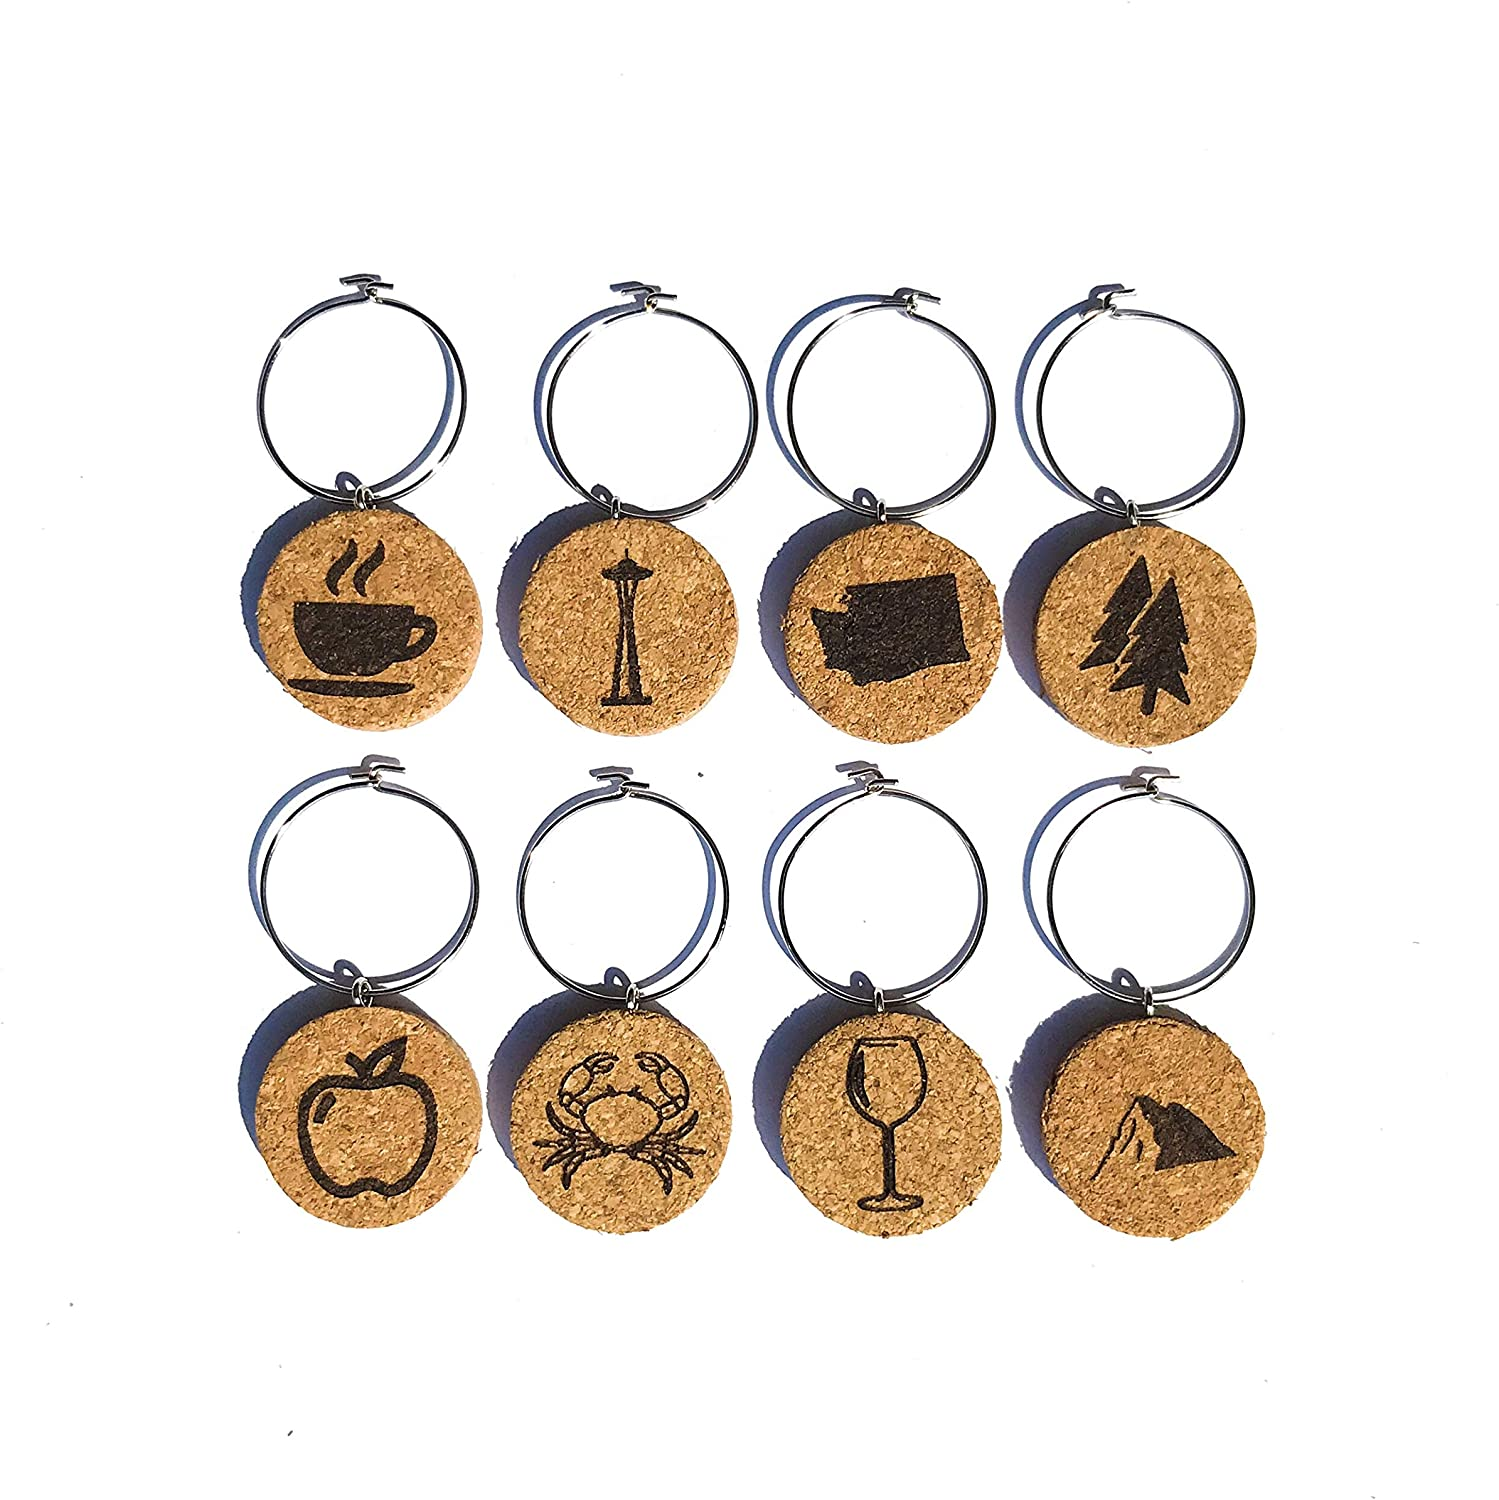 Washington Wine Charms (20+ Unique Sets) Cork Wine Glass Charms - Set of 8 Washington Charms, Washington State Themed Gifts/Souvenirs - Wine Glass Accessories, Wine Gift Basket for Wine Lover